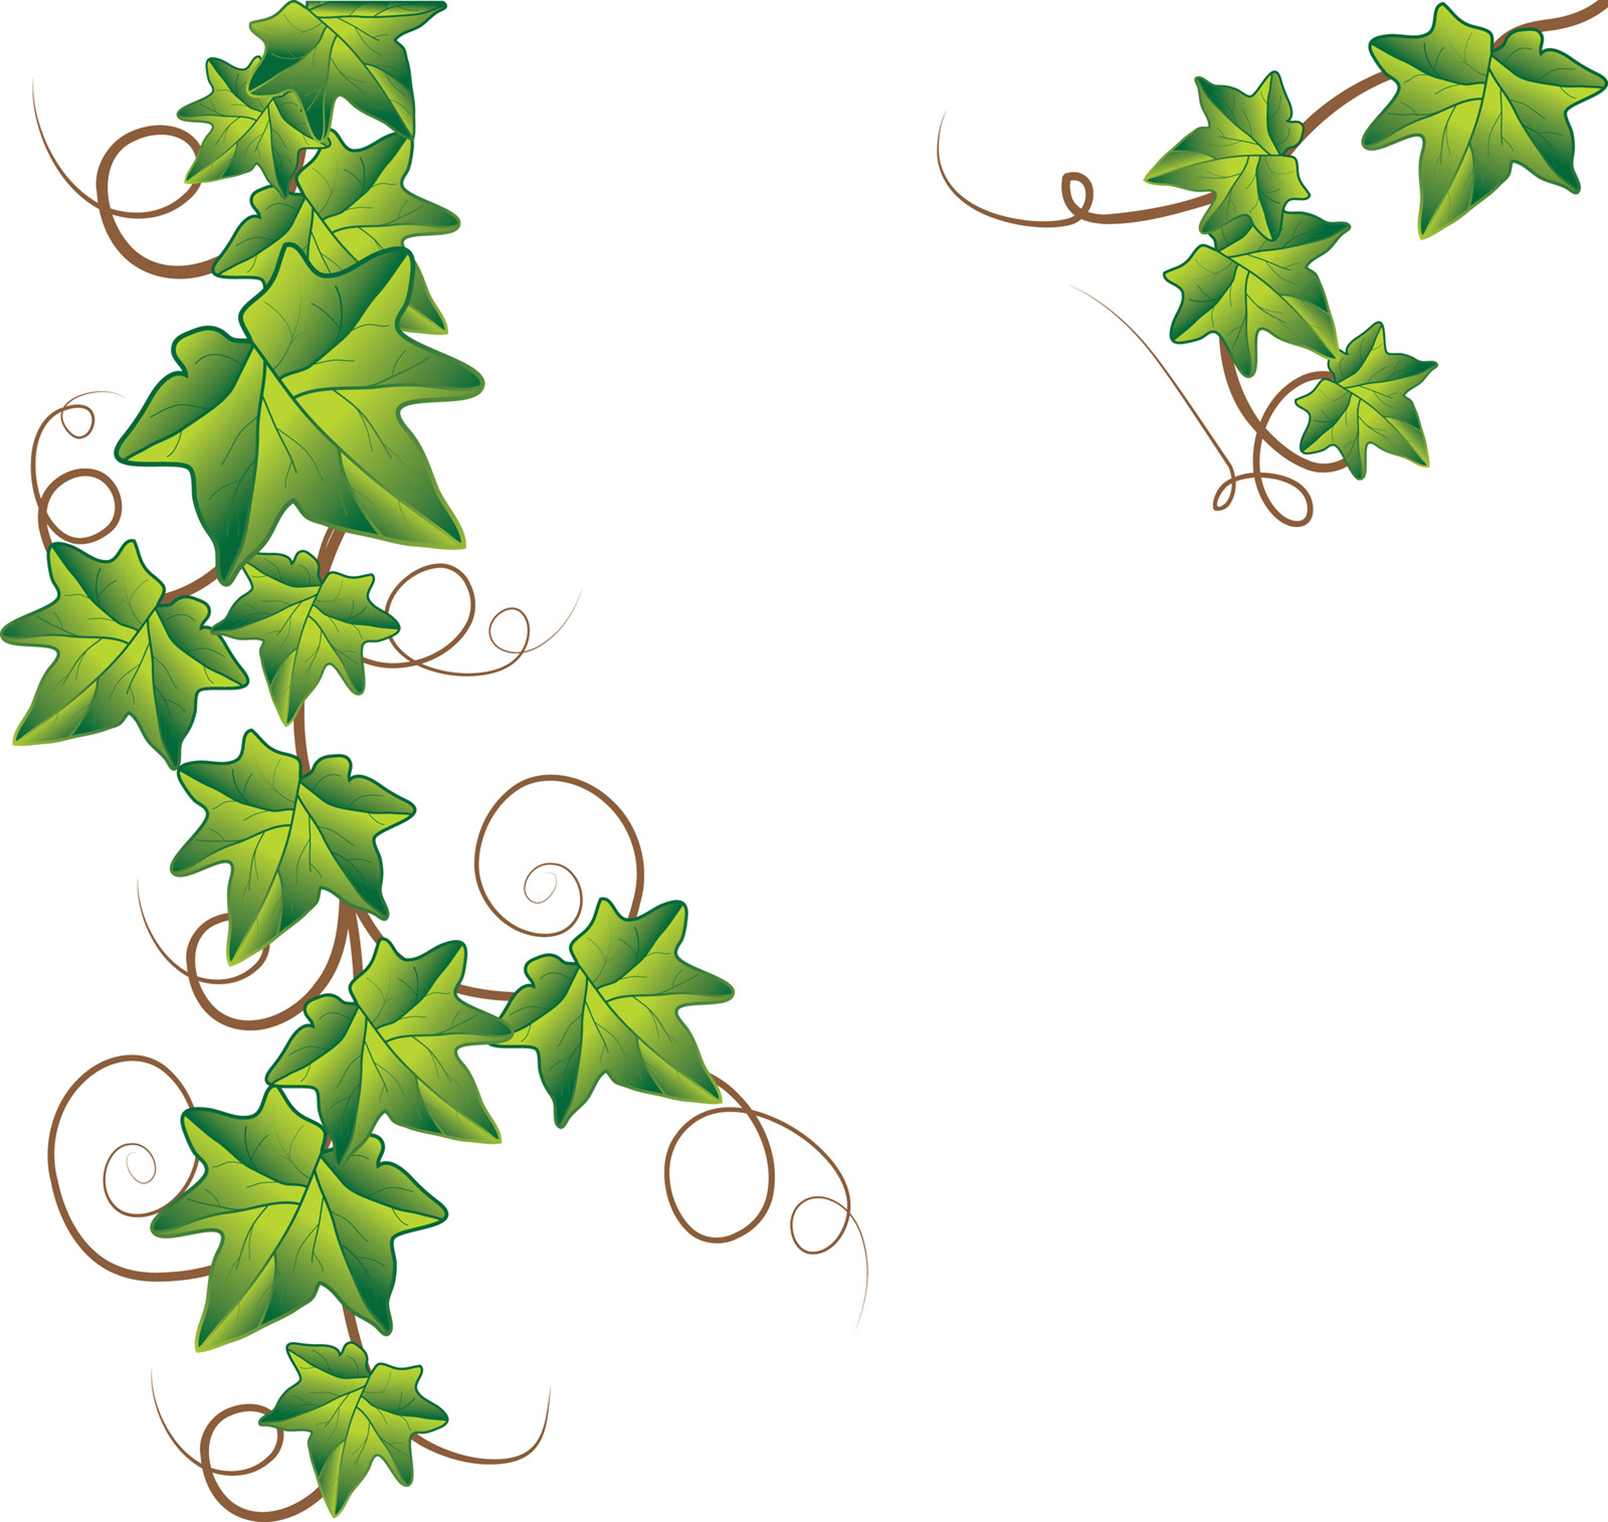 Vine leaf illustration